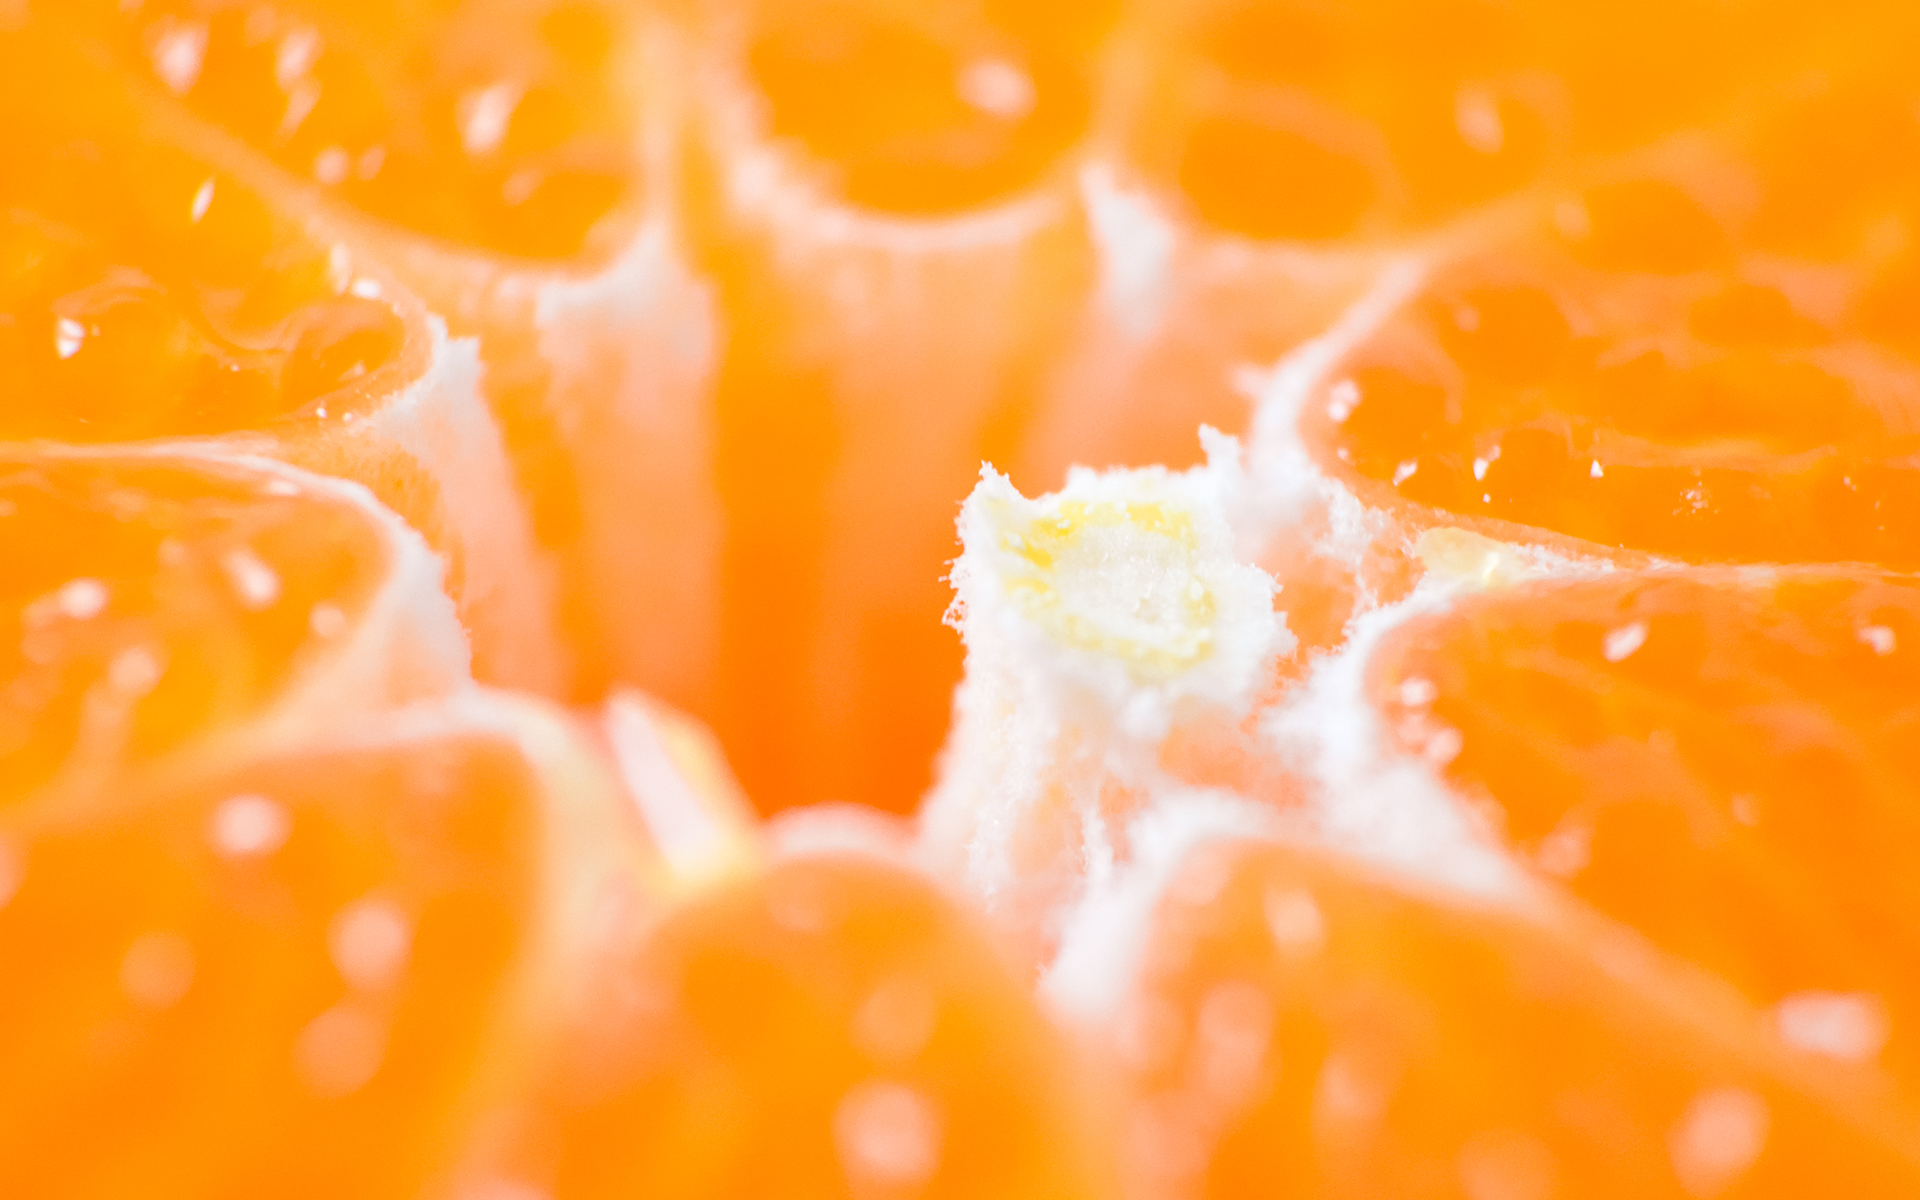 Orange Macro Background 38104 2880x1800 px